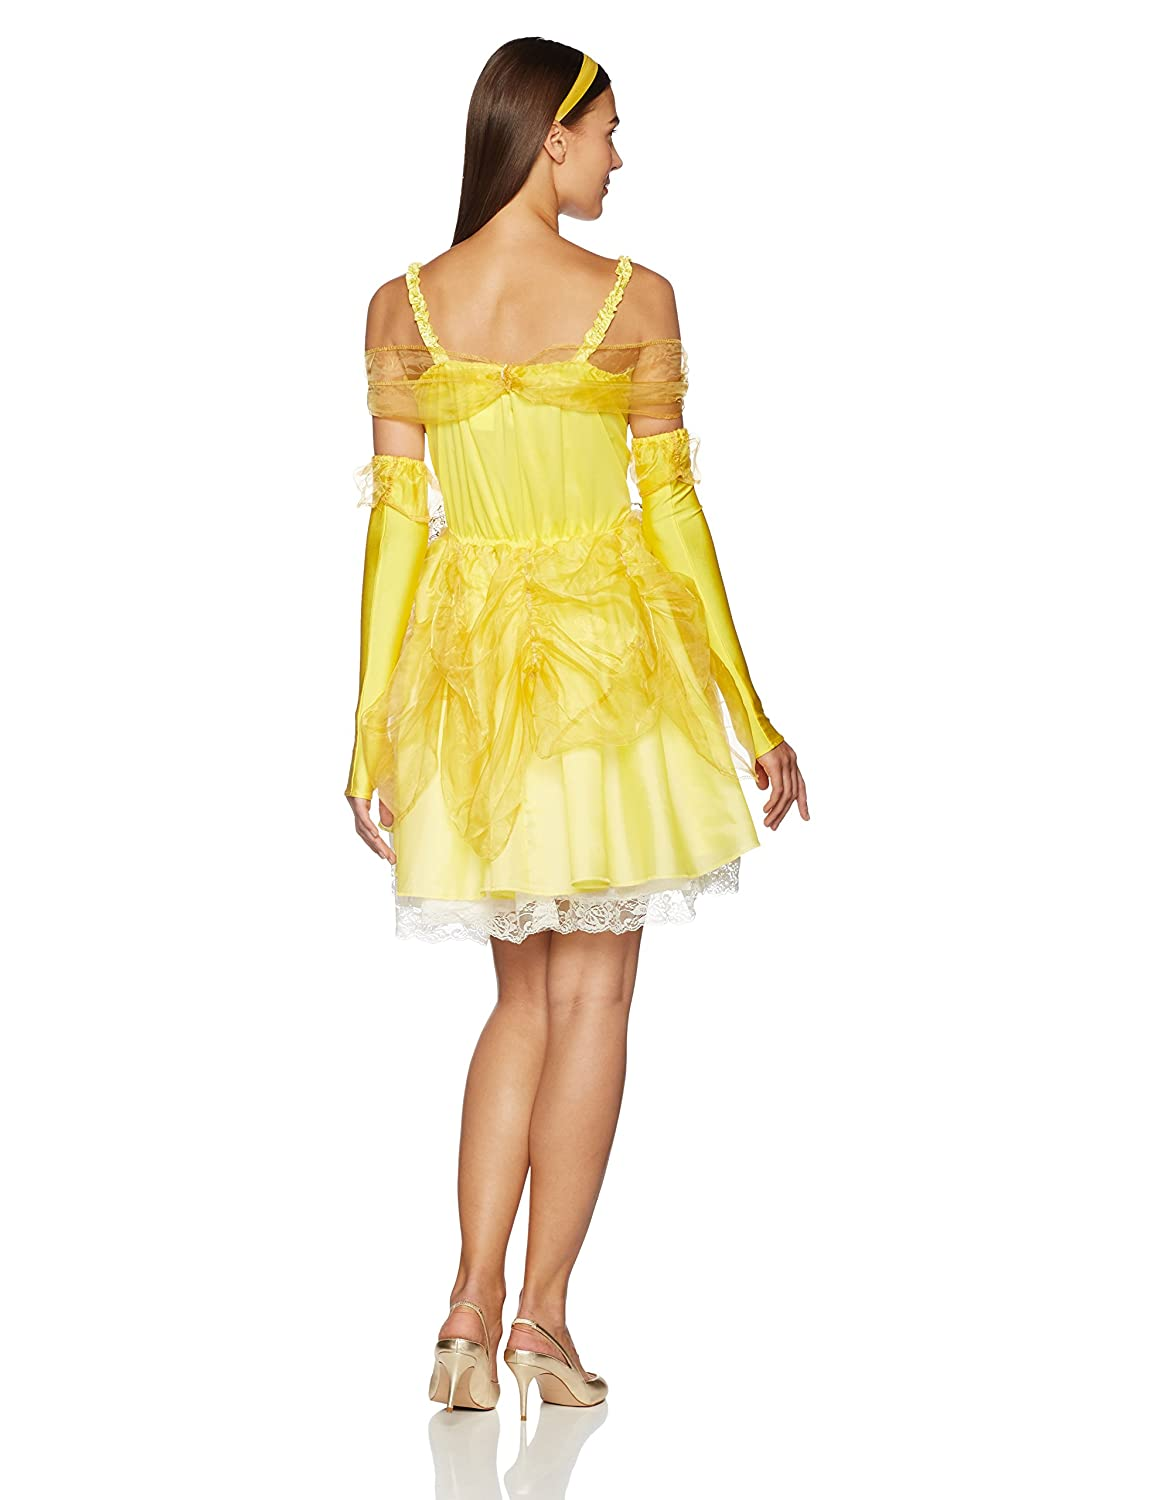 Disguise Costumes Disney Beauty And The Beast Sassy Belle Costume, Multi, Medium/8-10: Amazon.co.uk: Toys & Games